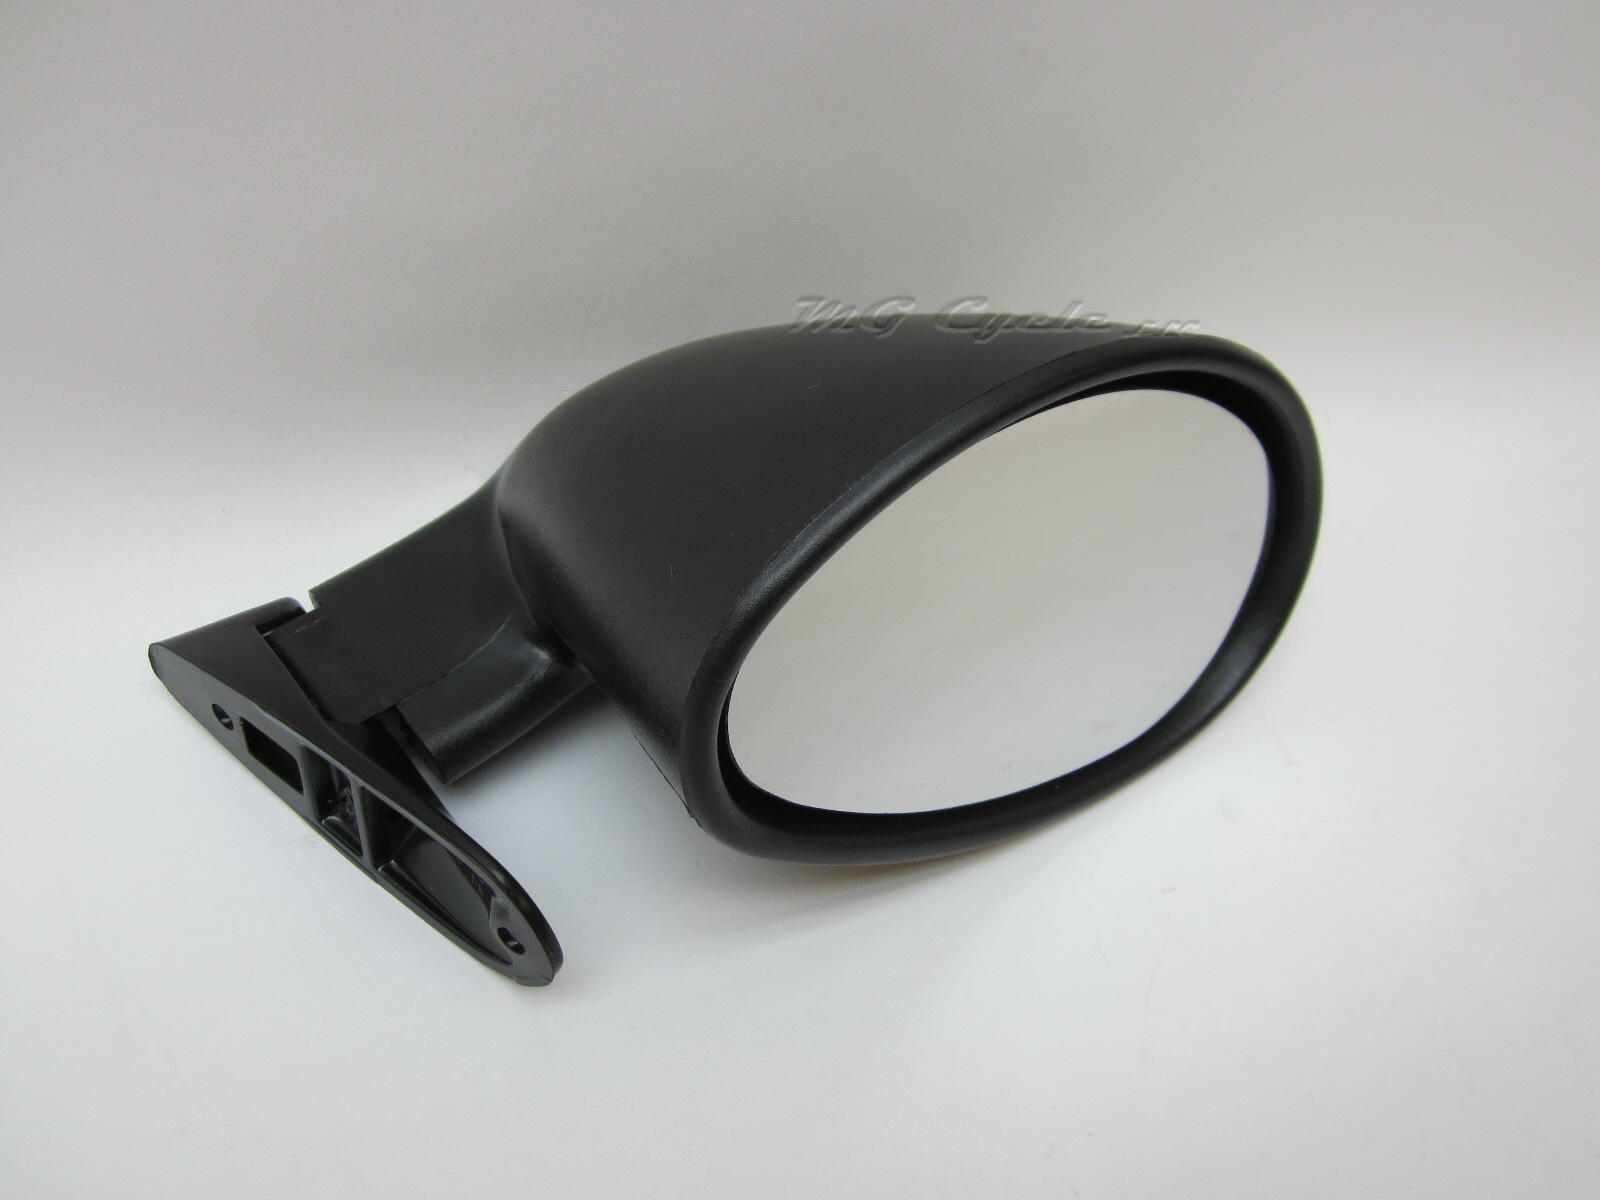 Vitaloni Californian right side mirror